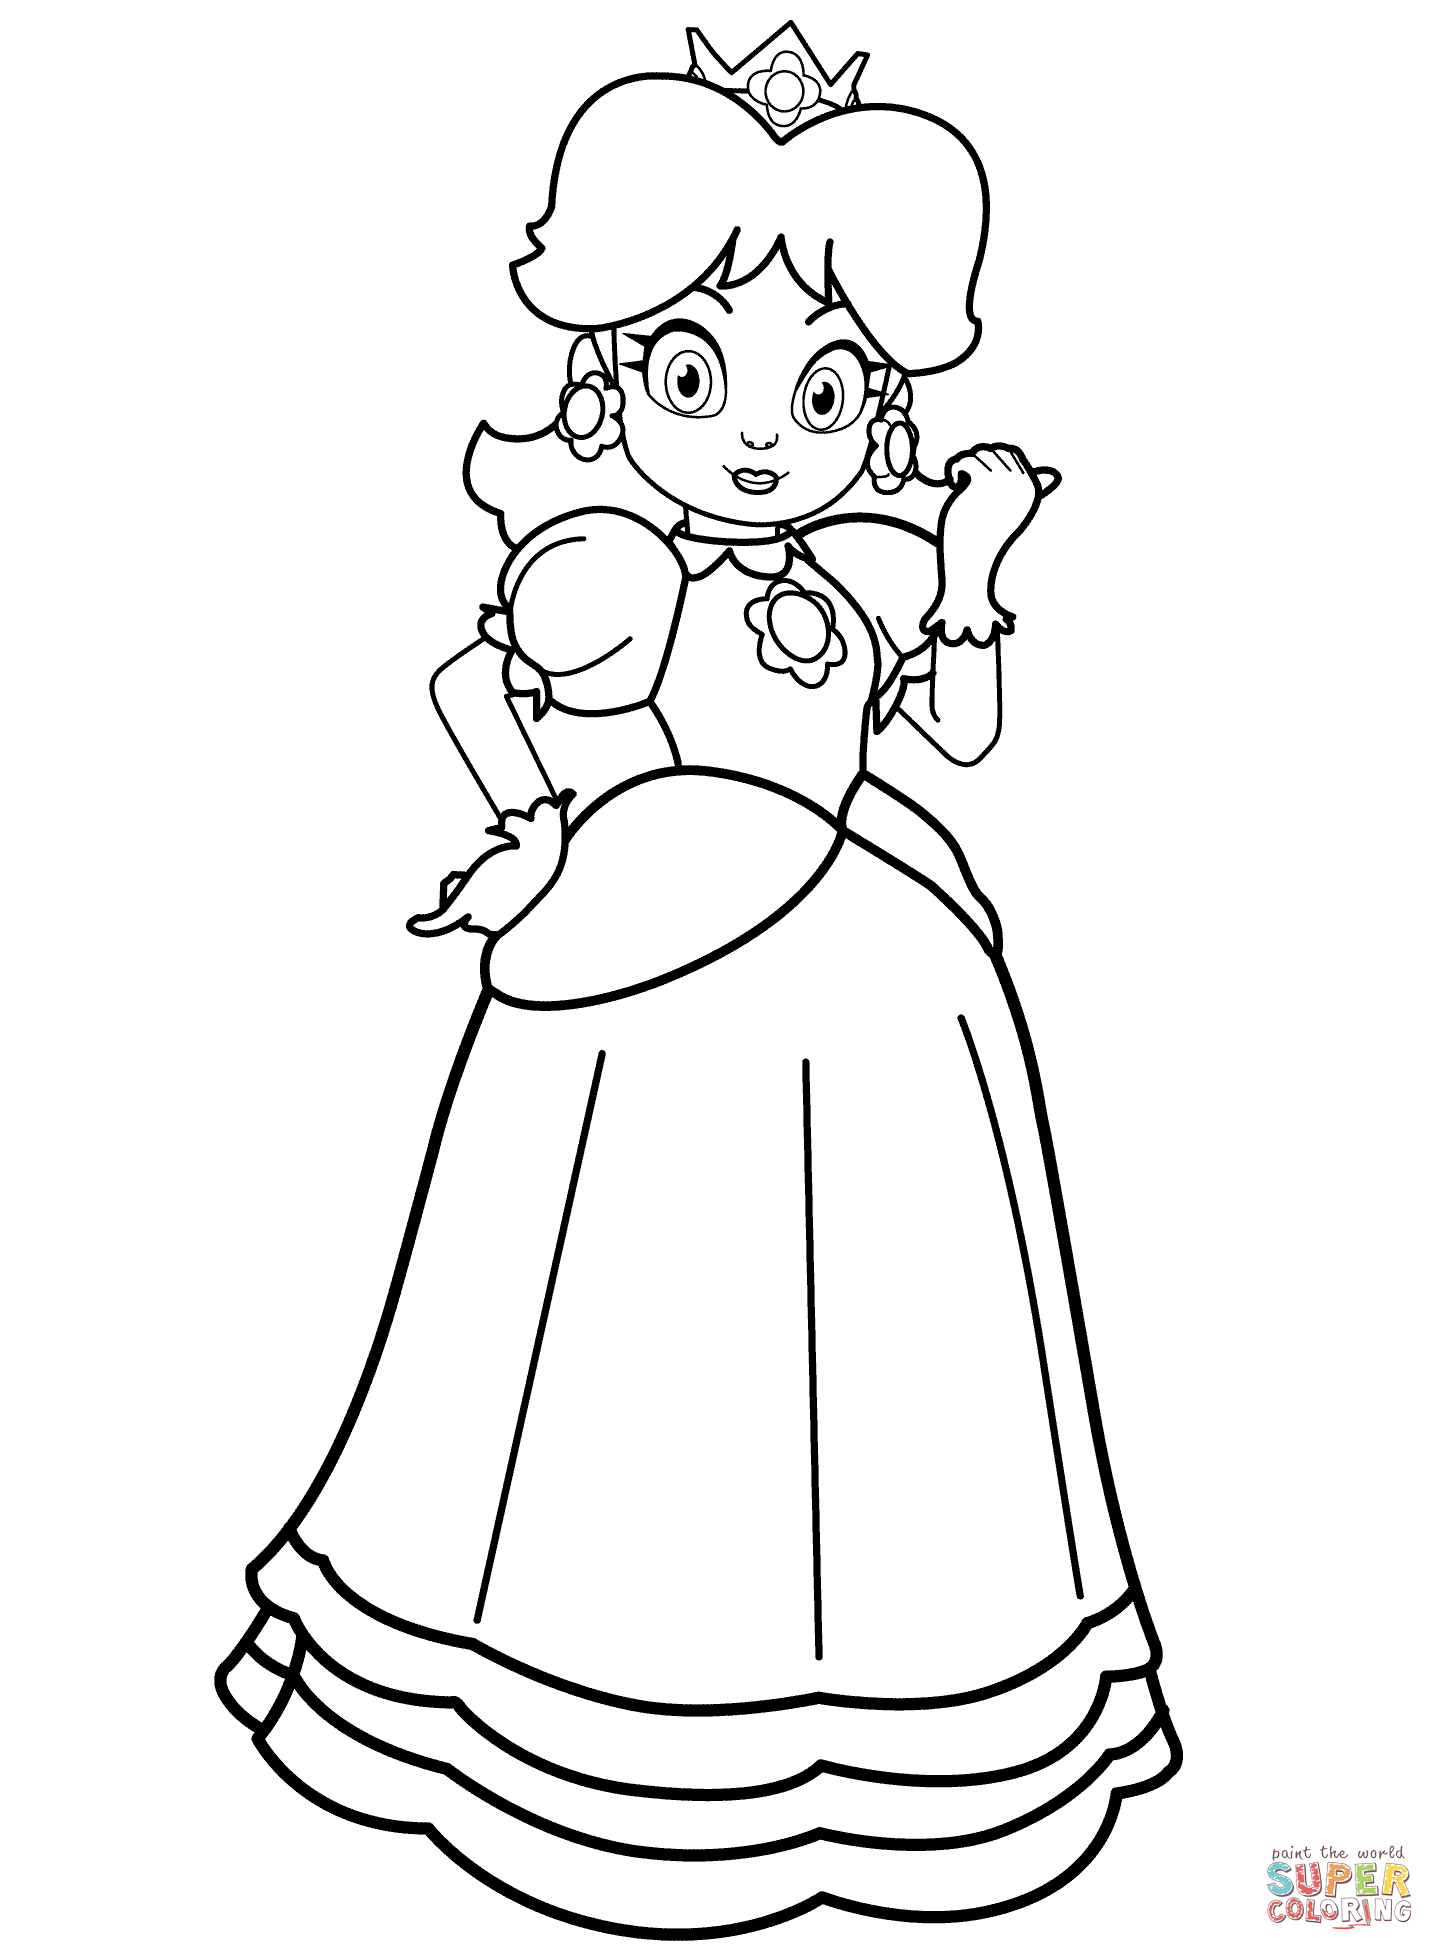 disney daisy coloring pages daisy to print for free daisy kids coloring pages daisy pages disney coloring